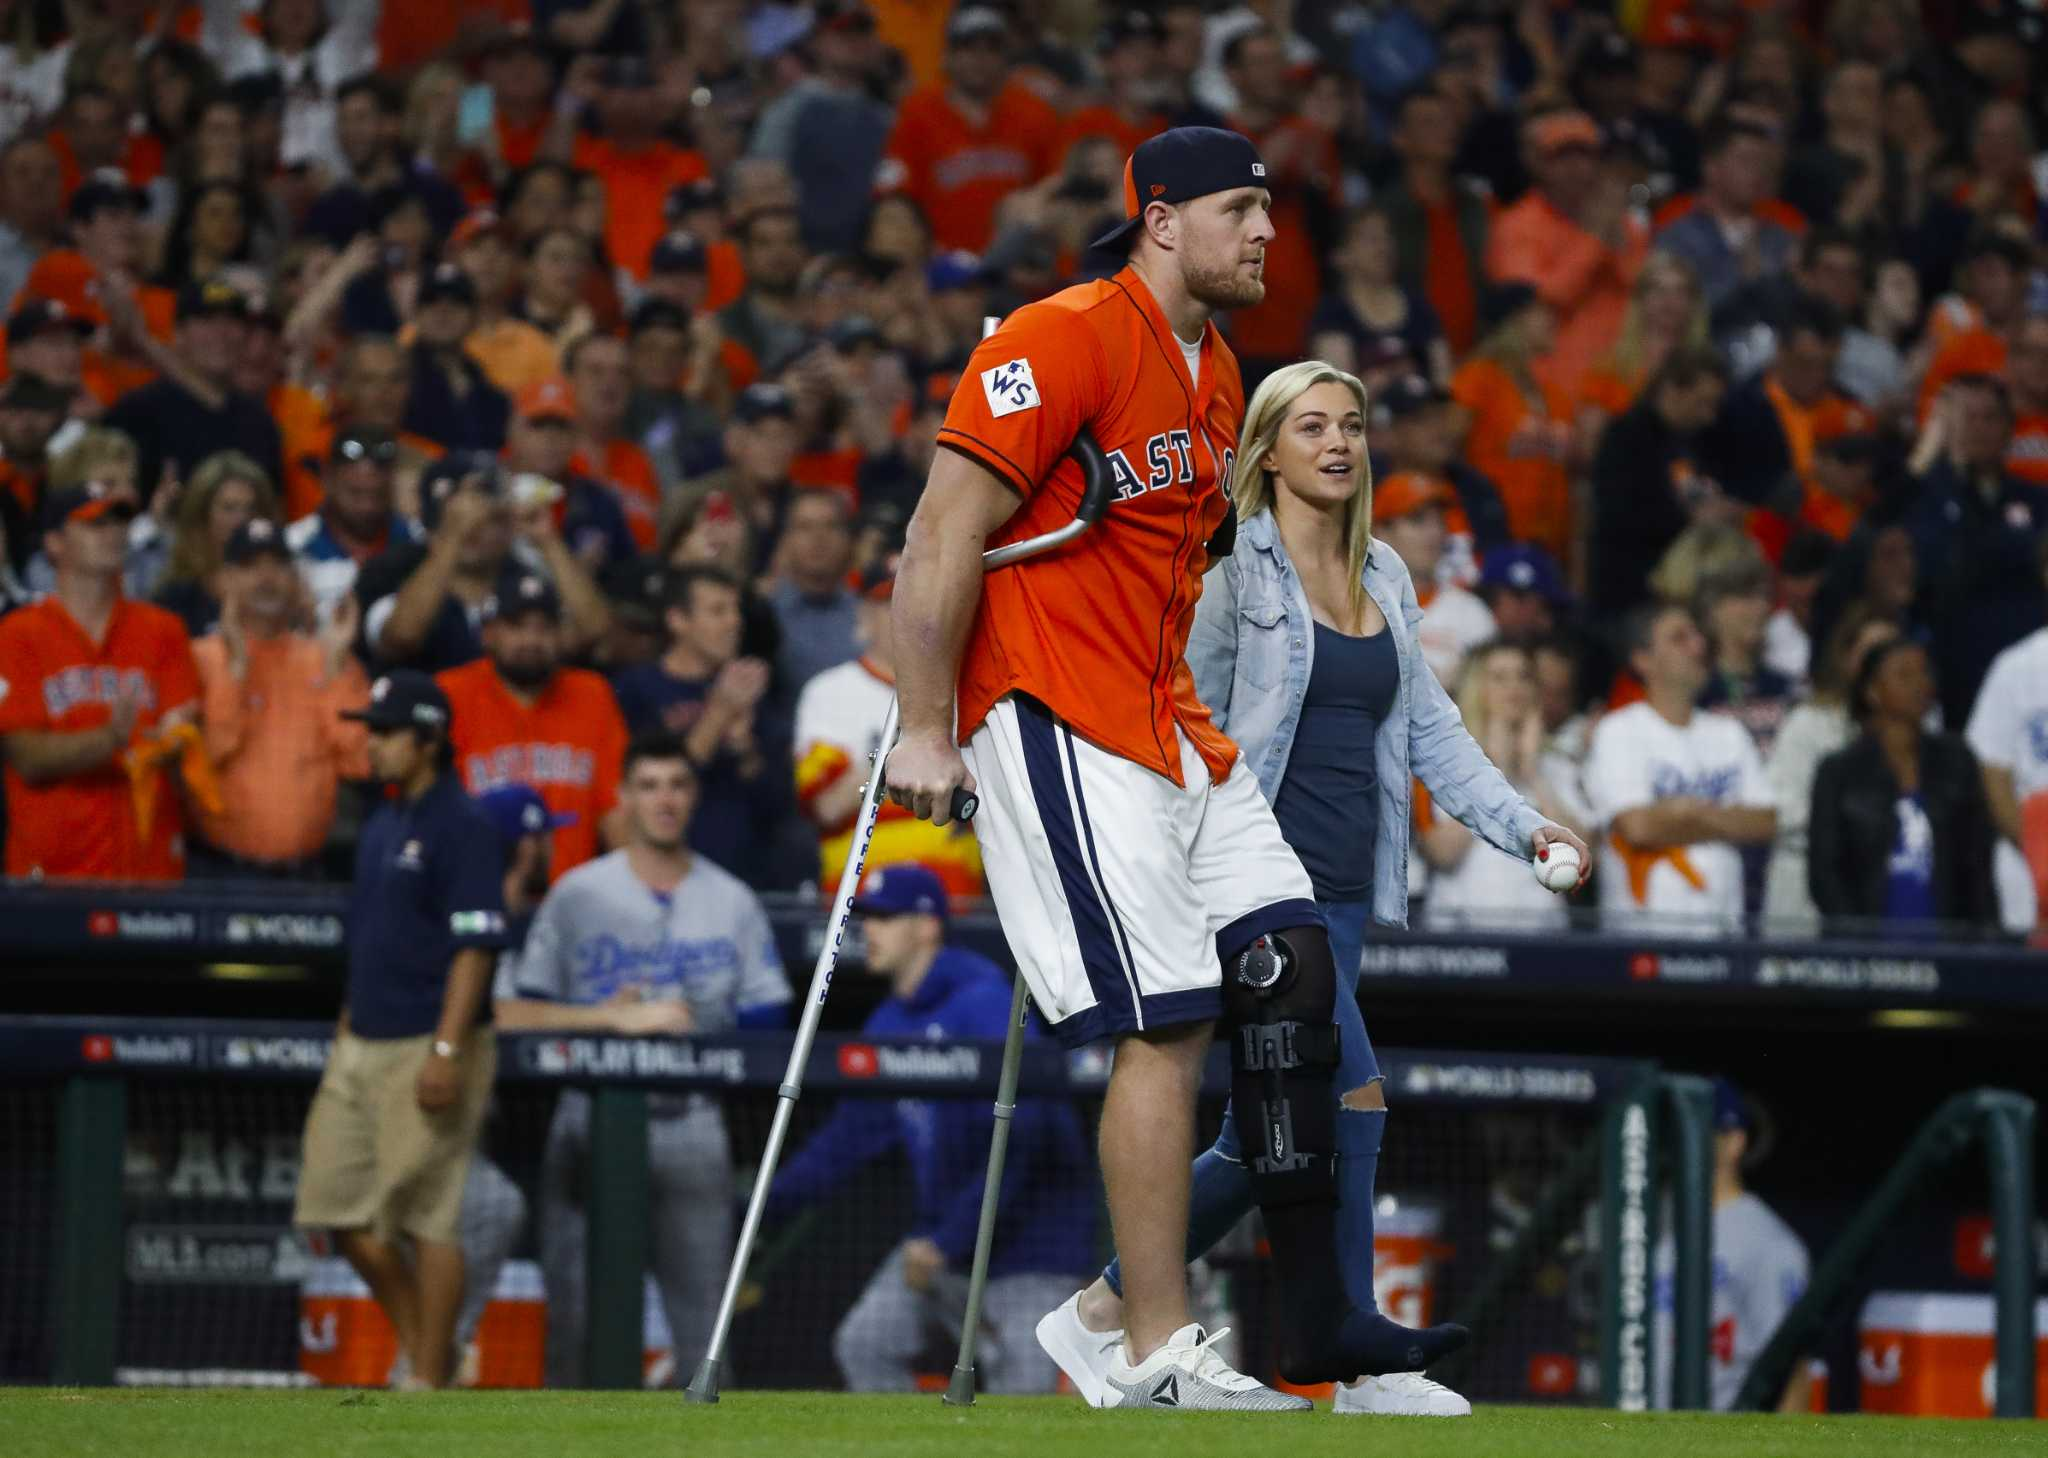 On crutches jj watt fires in first pitch before astros world on crutches jj watt fires in first pitch before astros world series game houston chronicle kristyandbryce Image collections